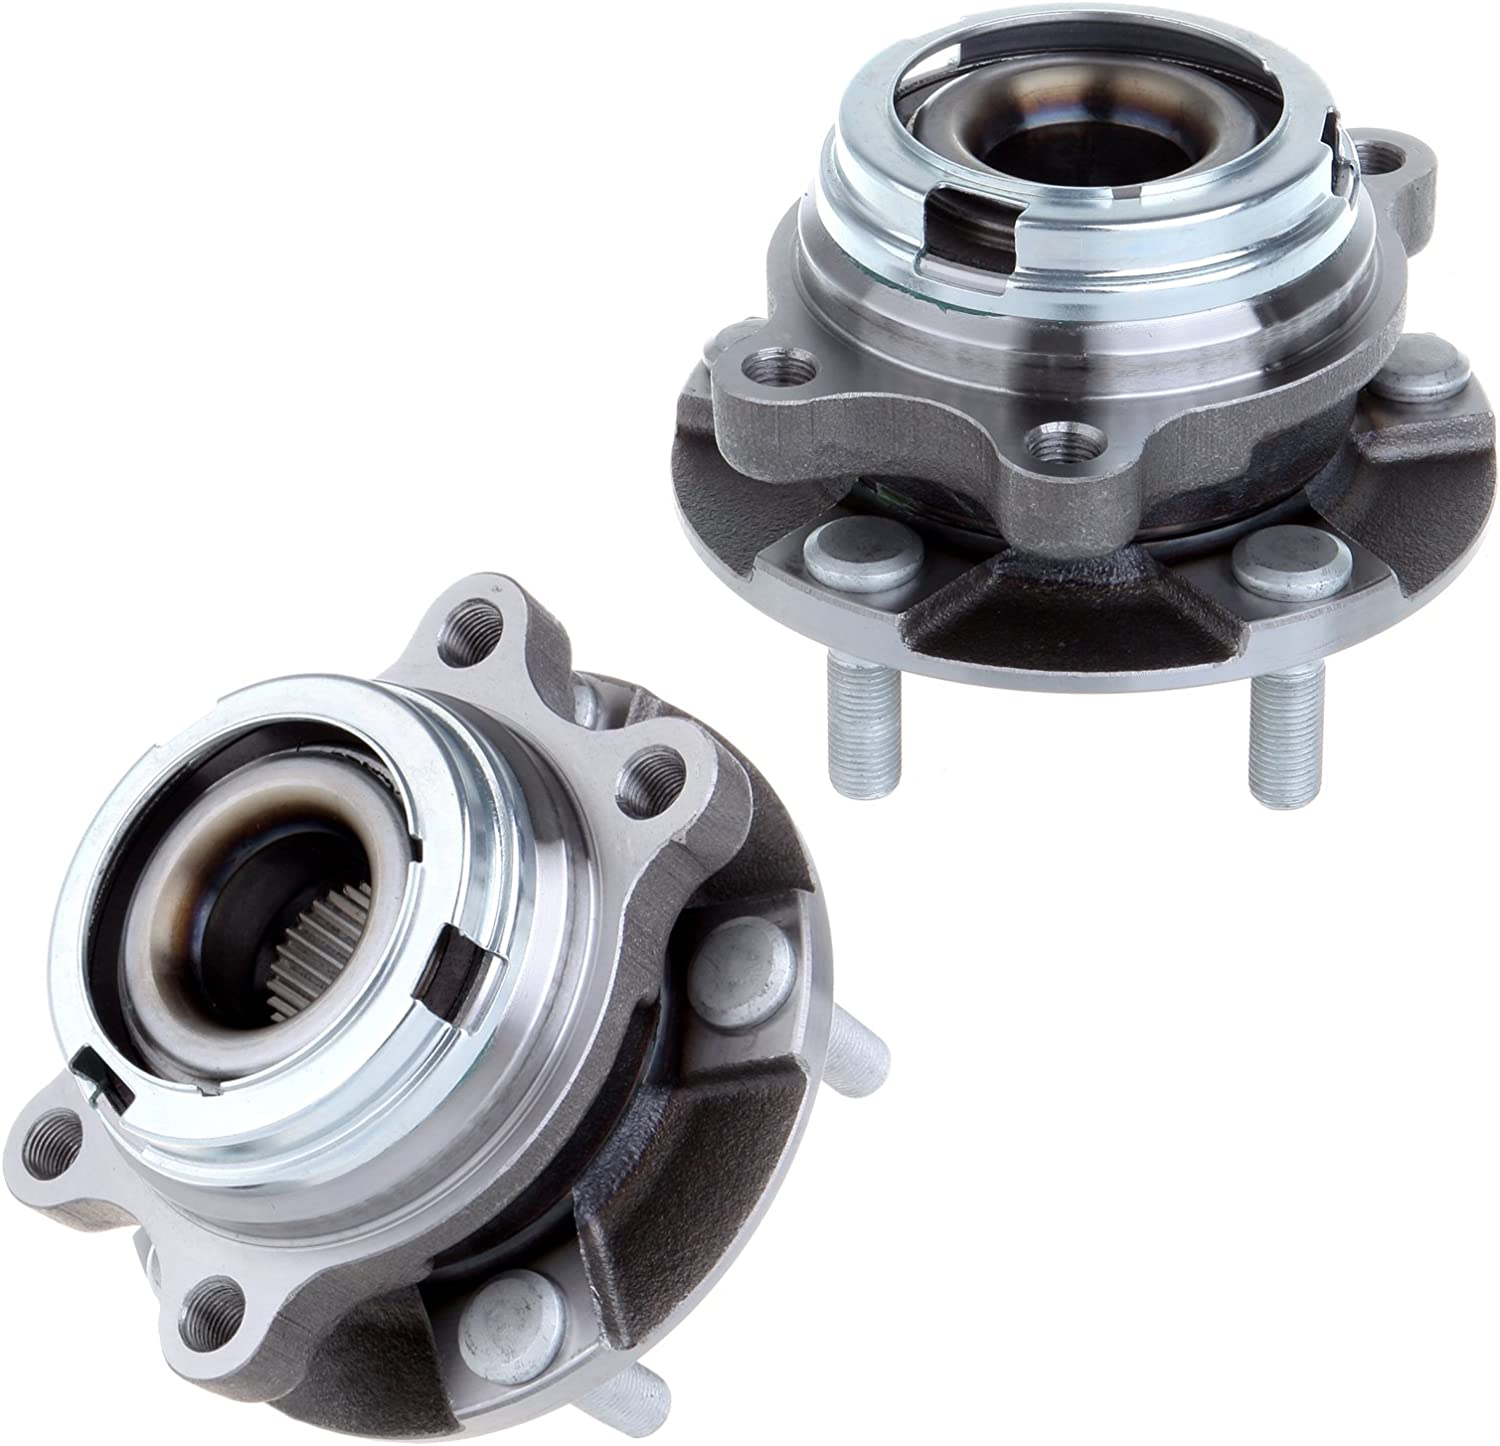 ECCPP Wheel Hub and Bearing Assembly Front 513310 fit 2003-2009 Nissan Quest Murano Replacement for 5 lugs wheel hub no ABS